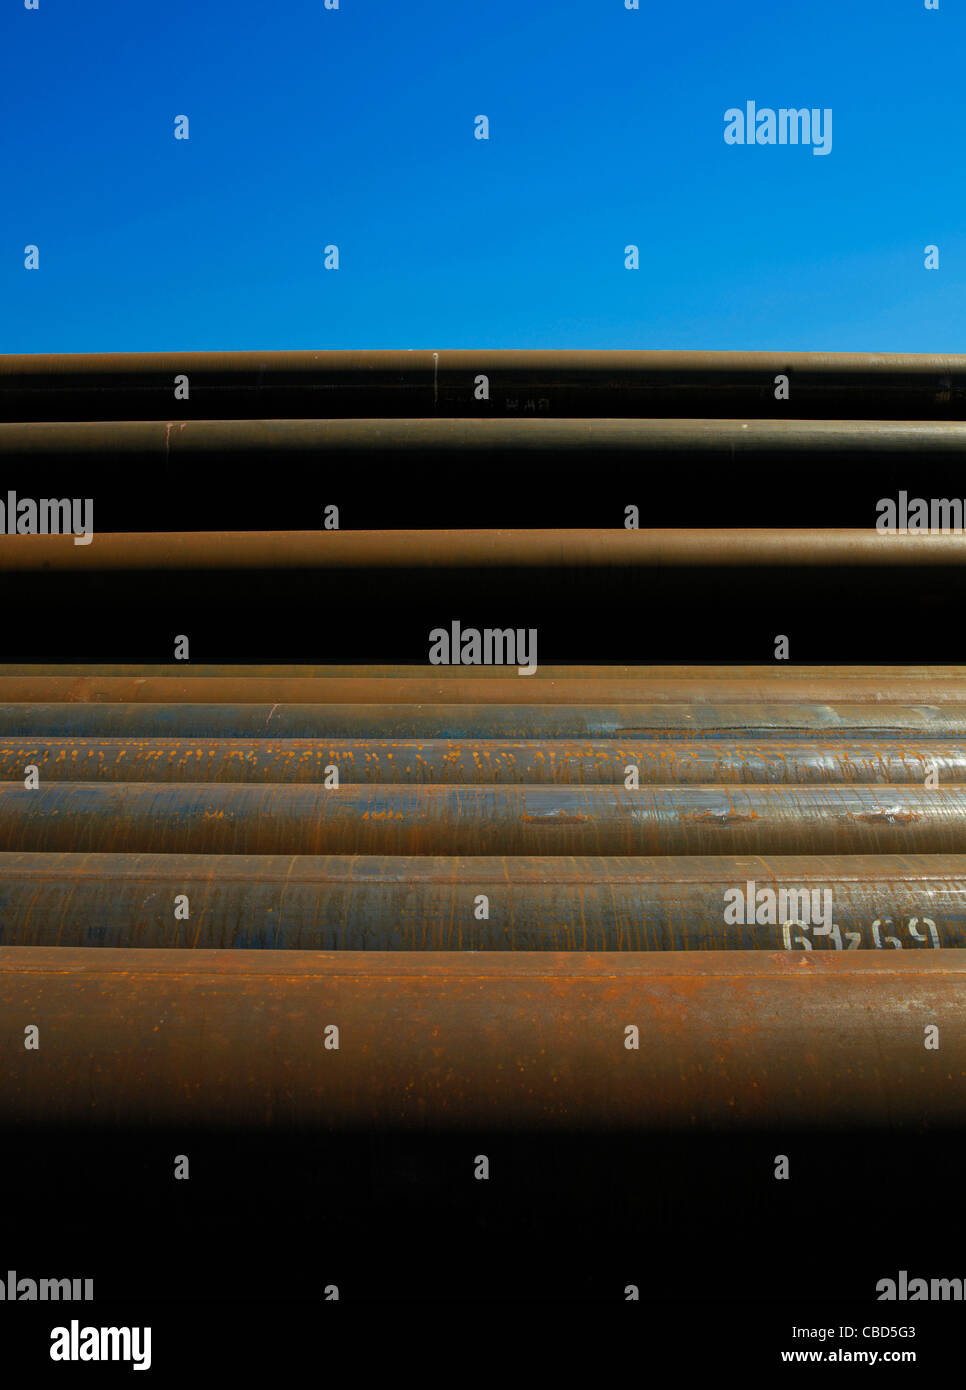 Rusted pipes piled against blue sky - Stock Image